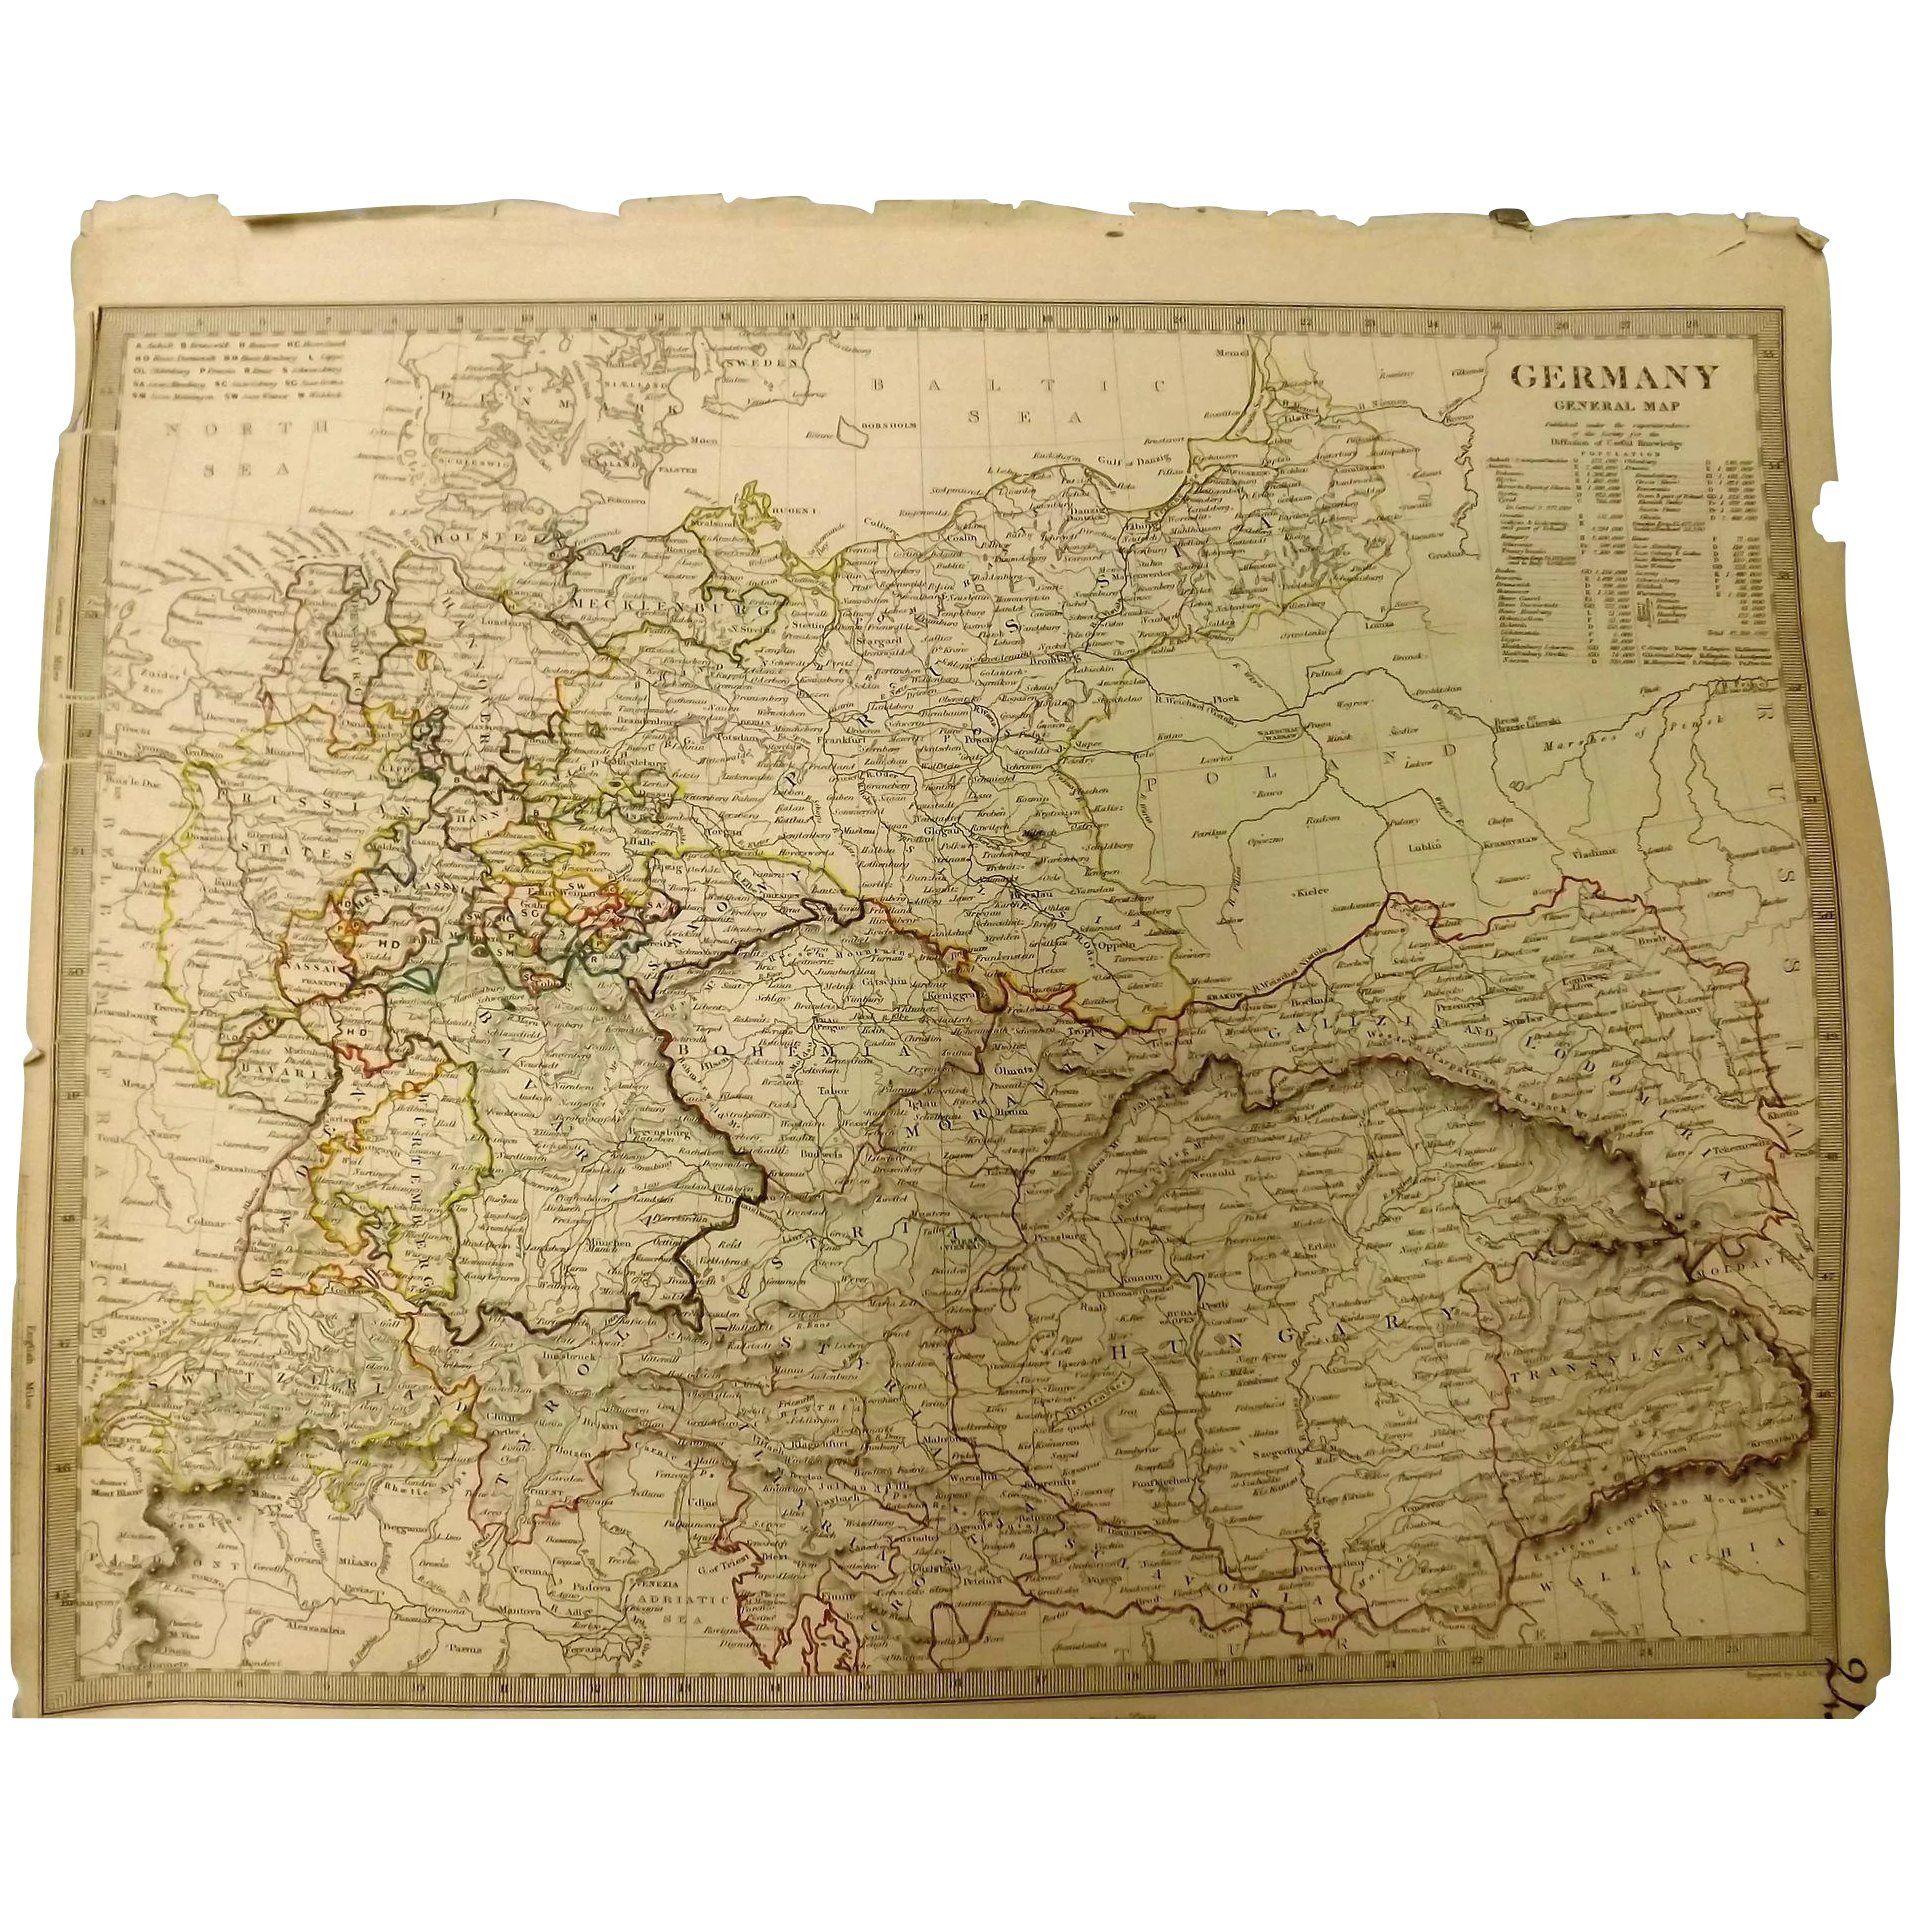 Original ATLAS MAP of Germany Circa 1840 Published By